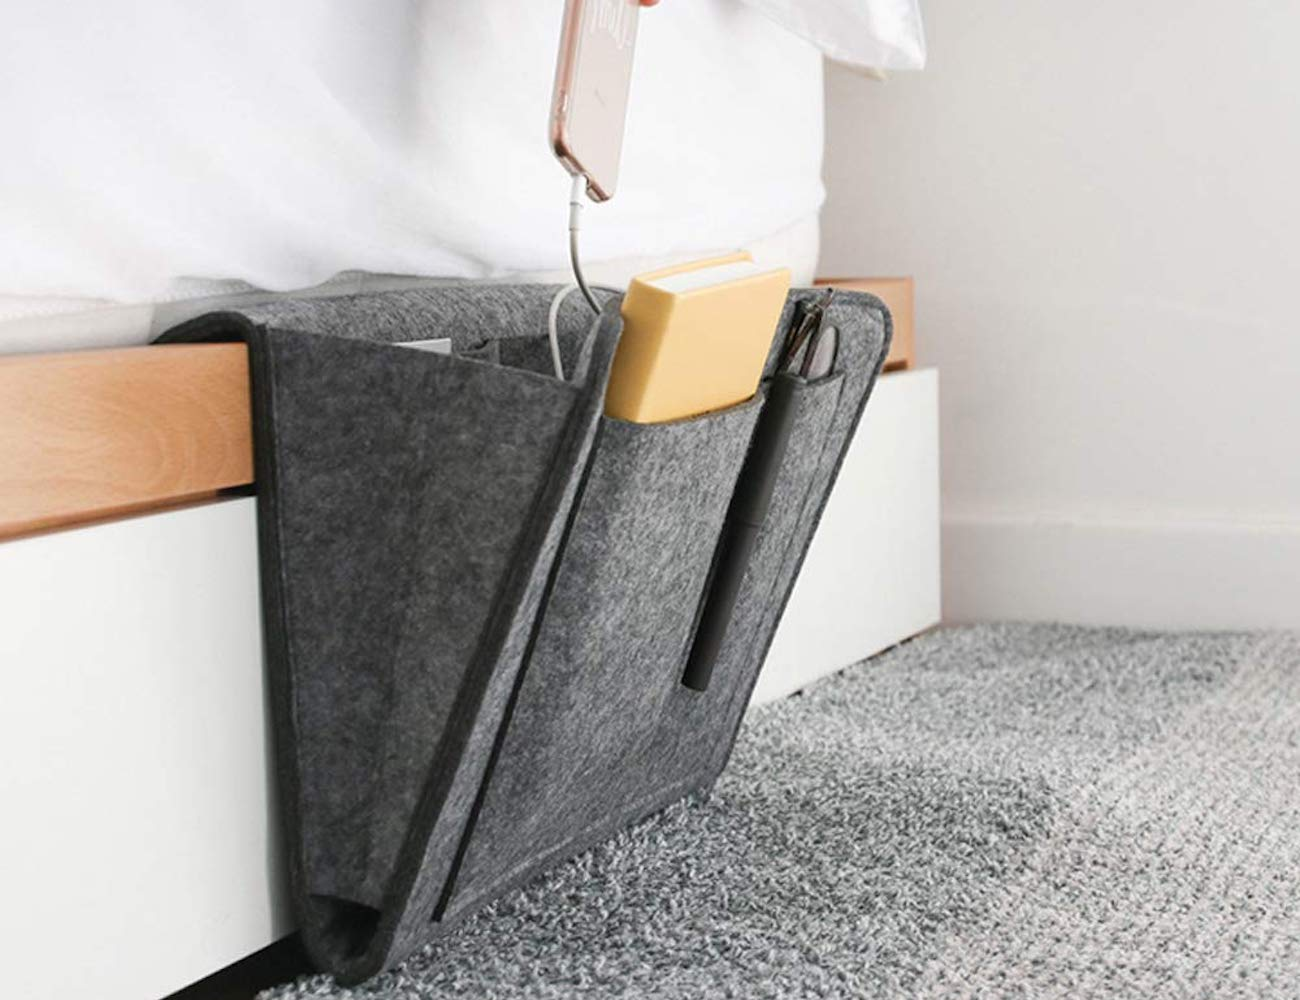 Lin-Tong Felt Bedside Organizer neatly stores all your often-used items